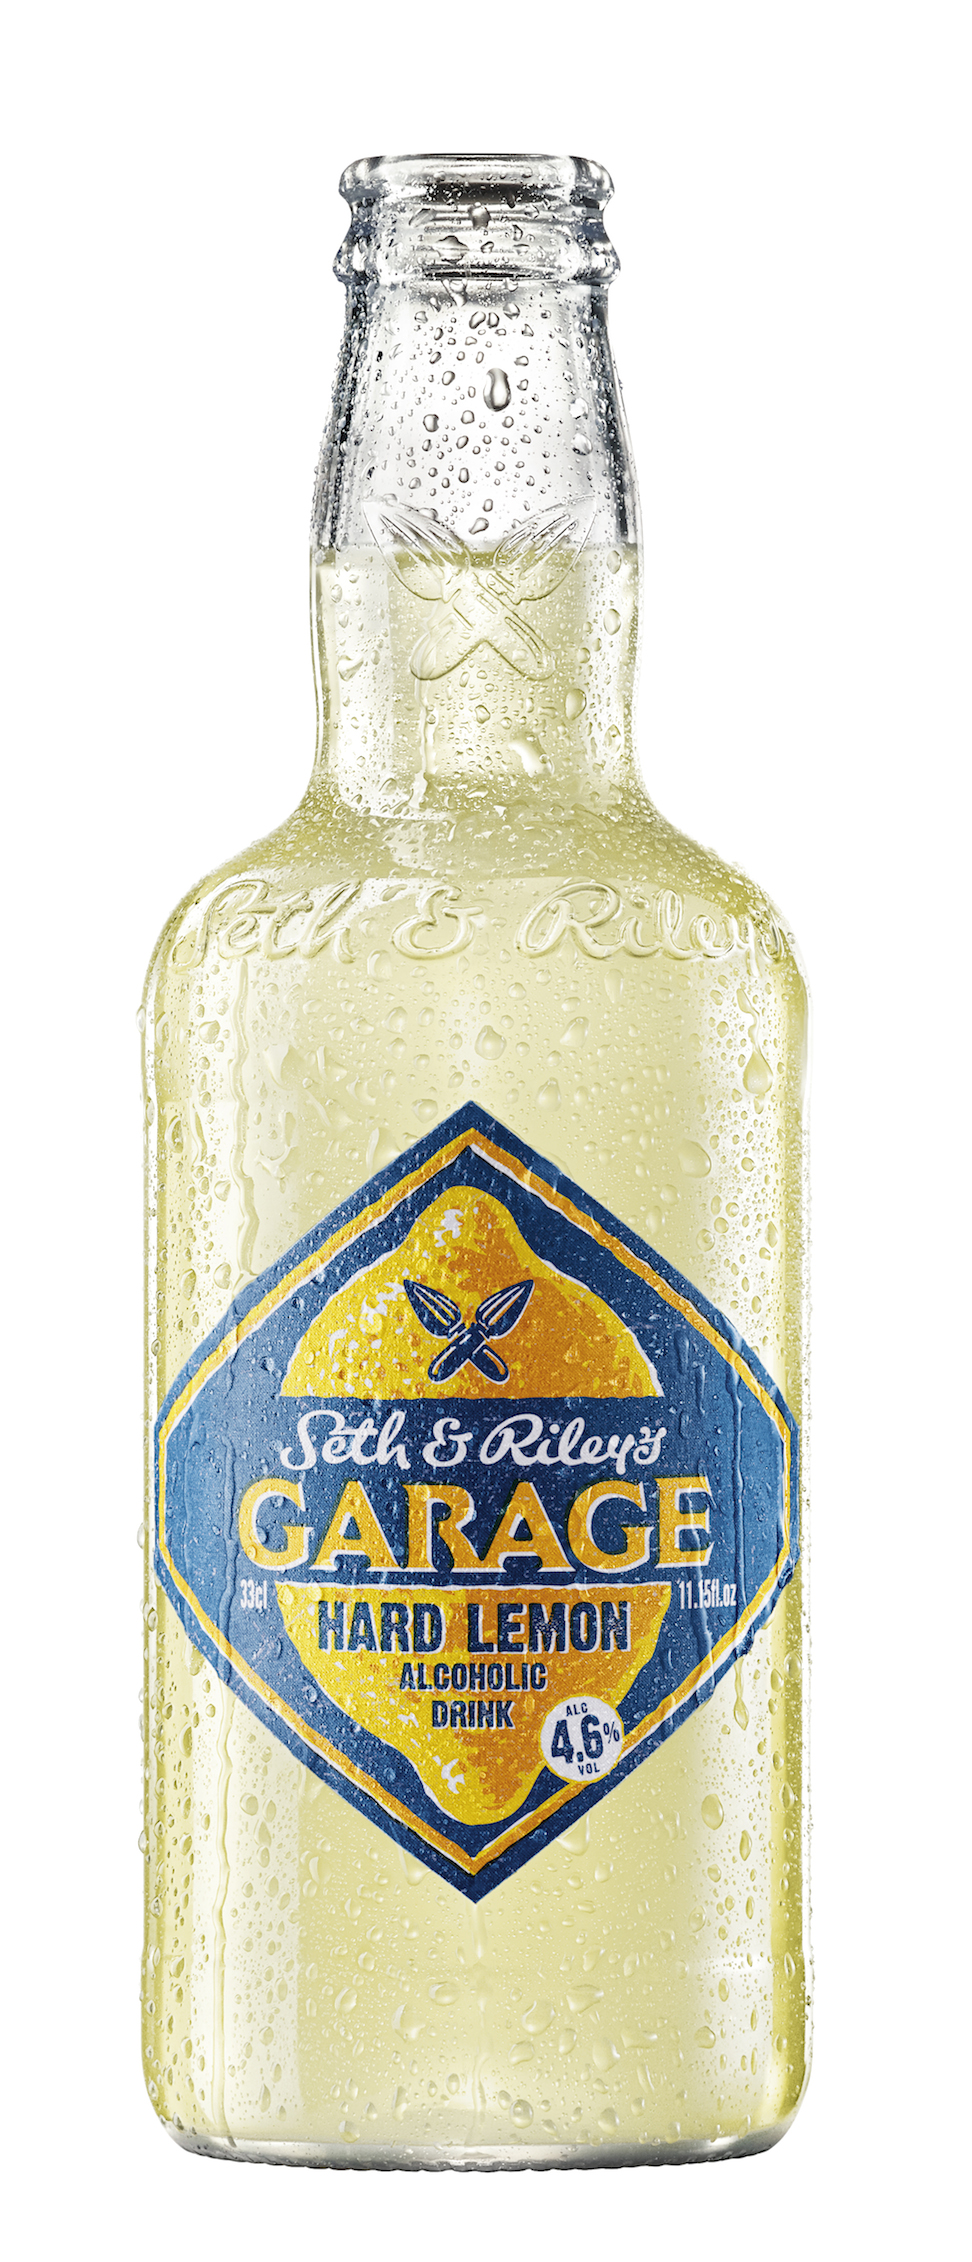 seth-and-rileys-garage-hard-lemonade_02